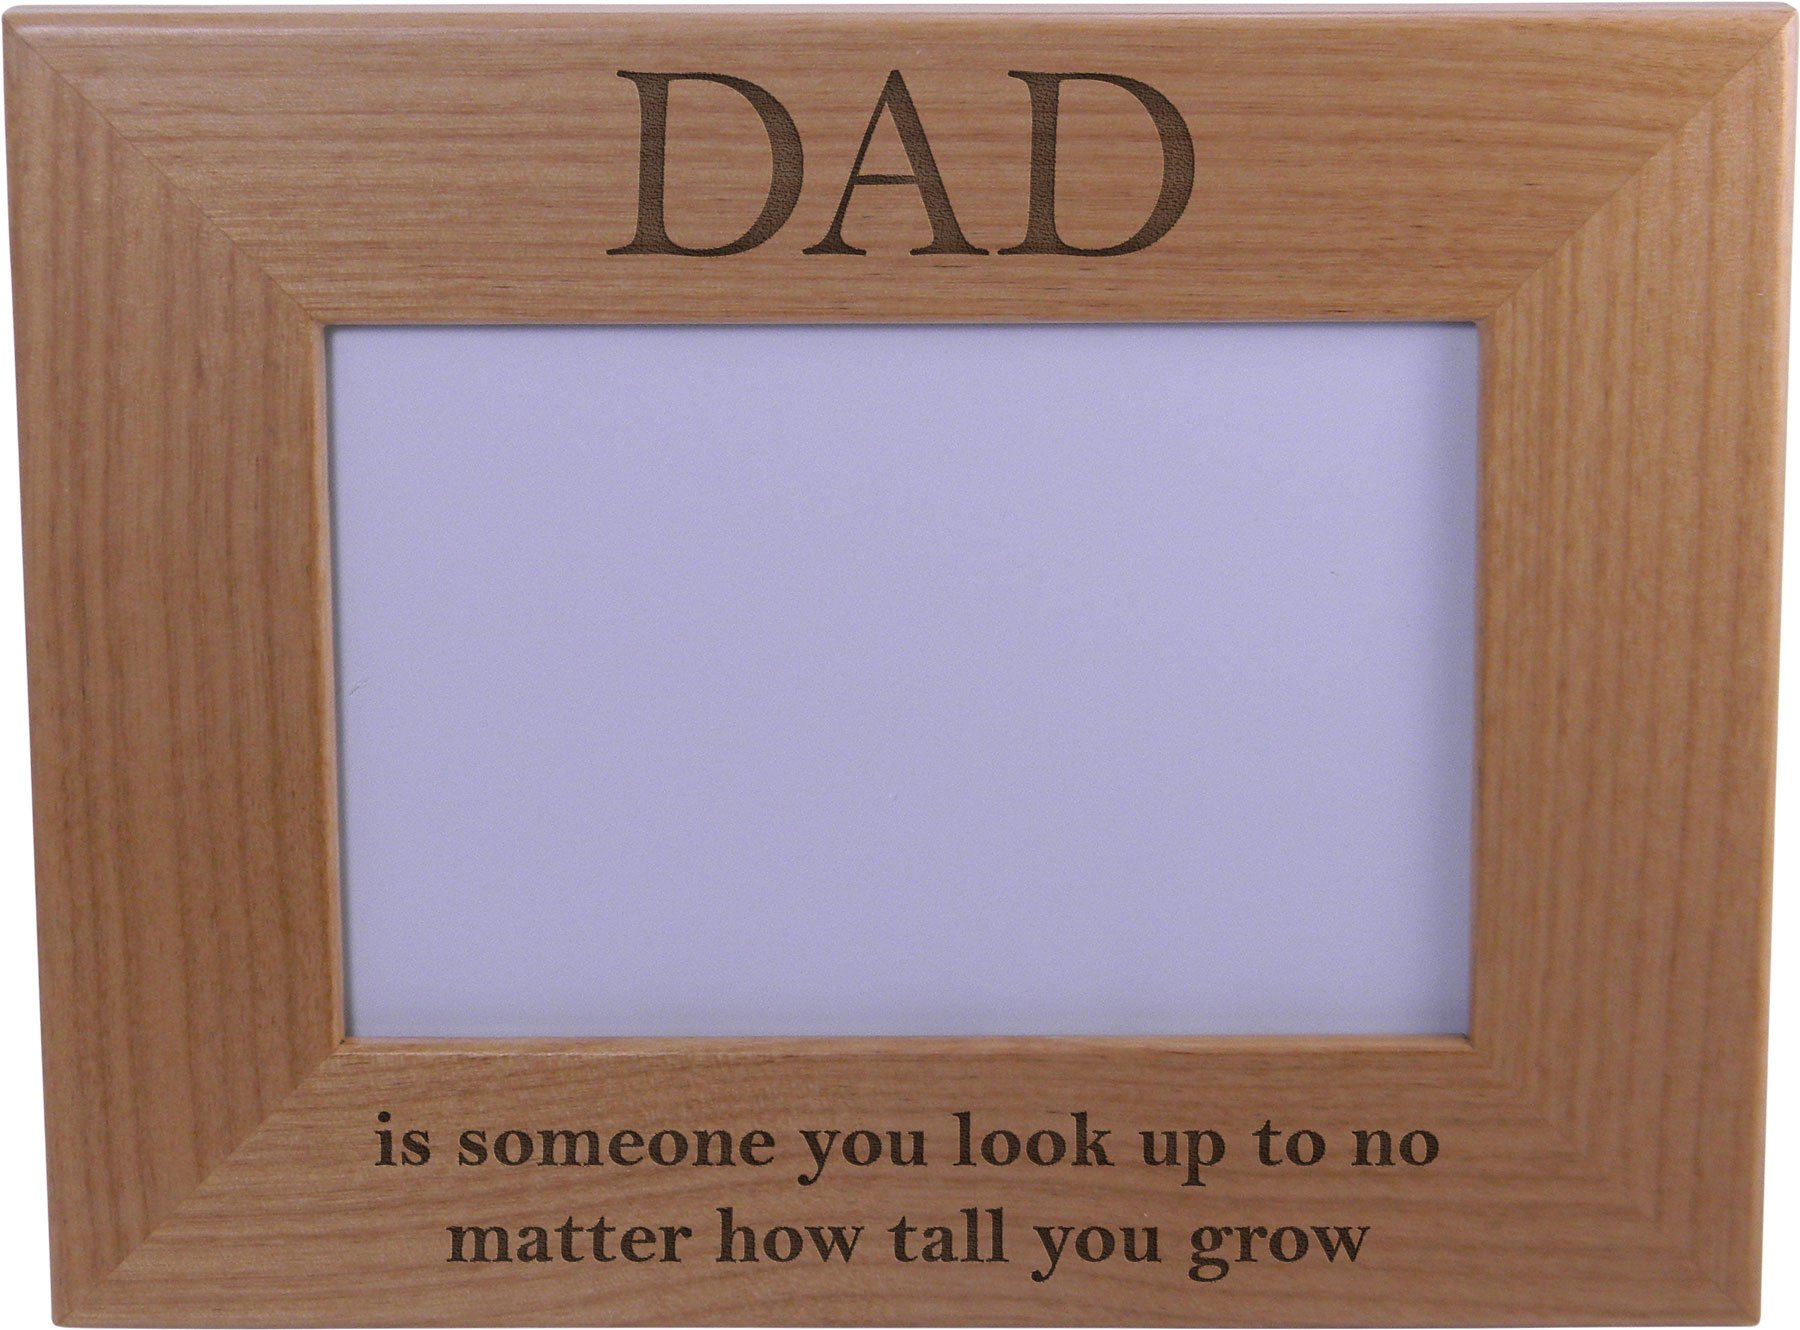 Dad: is someone you look up to - 4x6 Inch Wood Picture Frame - Great Gift for Father's Day Birthday or Christmas Gift for Dad Grandpa Papa Husband